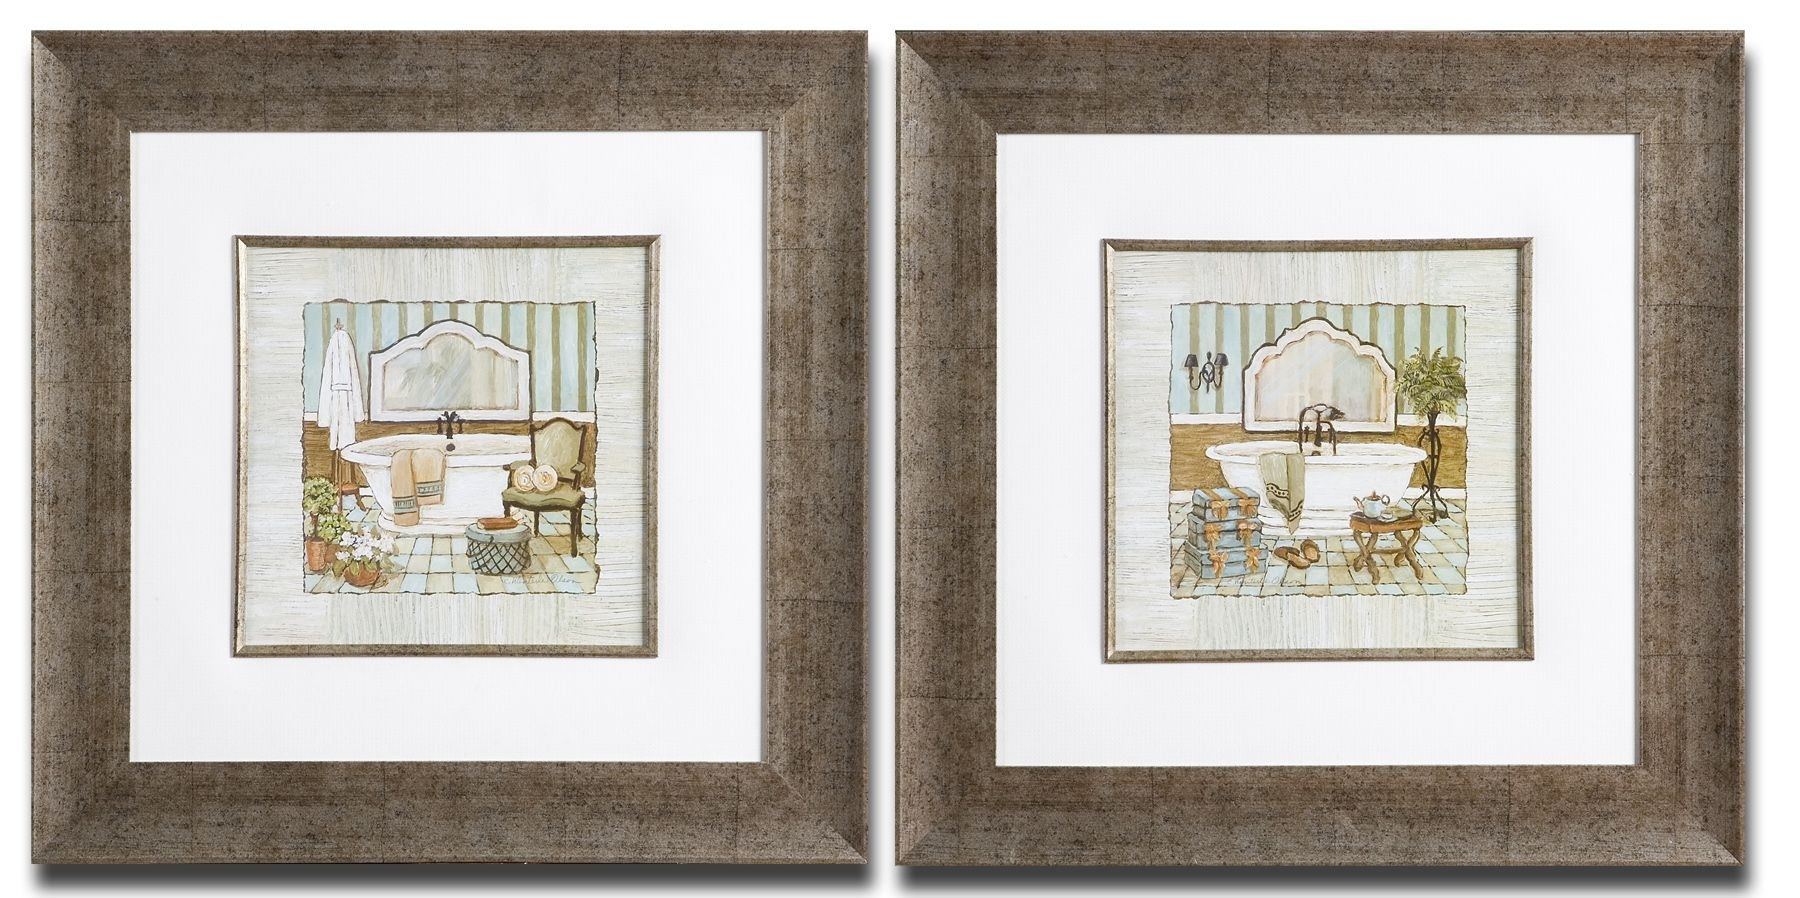 Framed Art For Bathroom, French Bathroom Prints Vintage Within Most Up To Date Framed Country Art Prints (View 11 of 15)